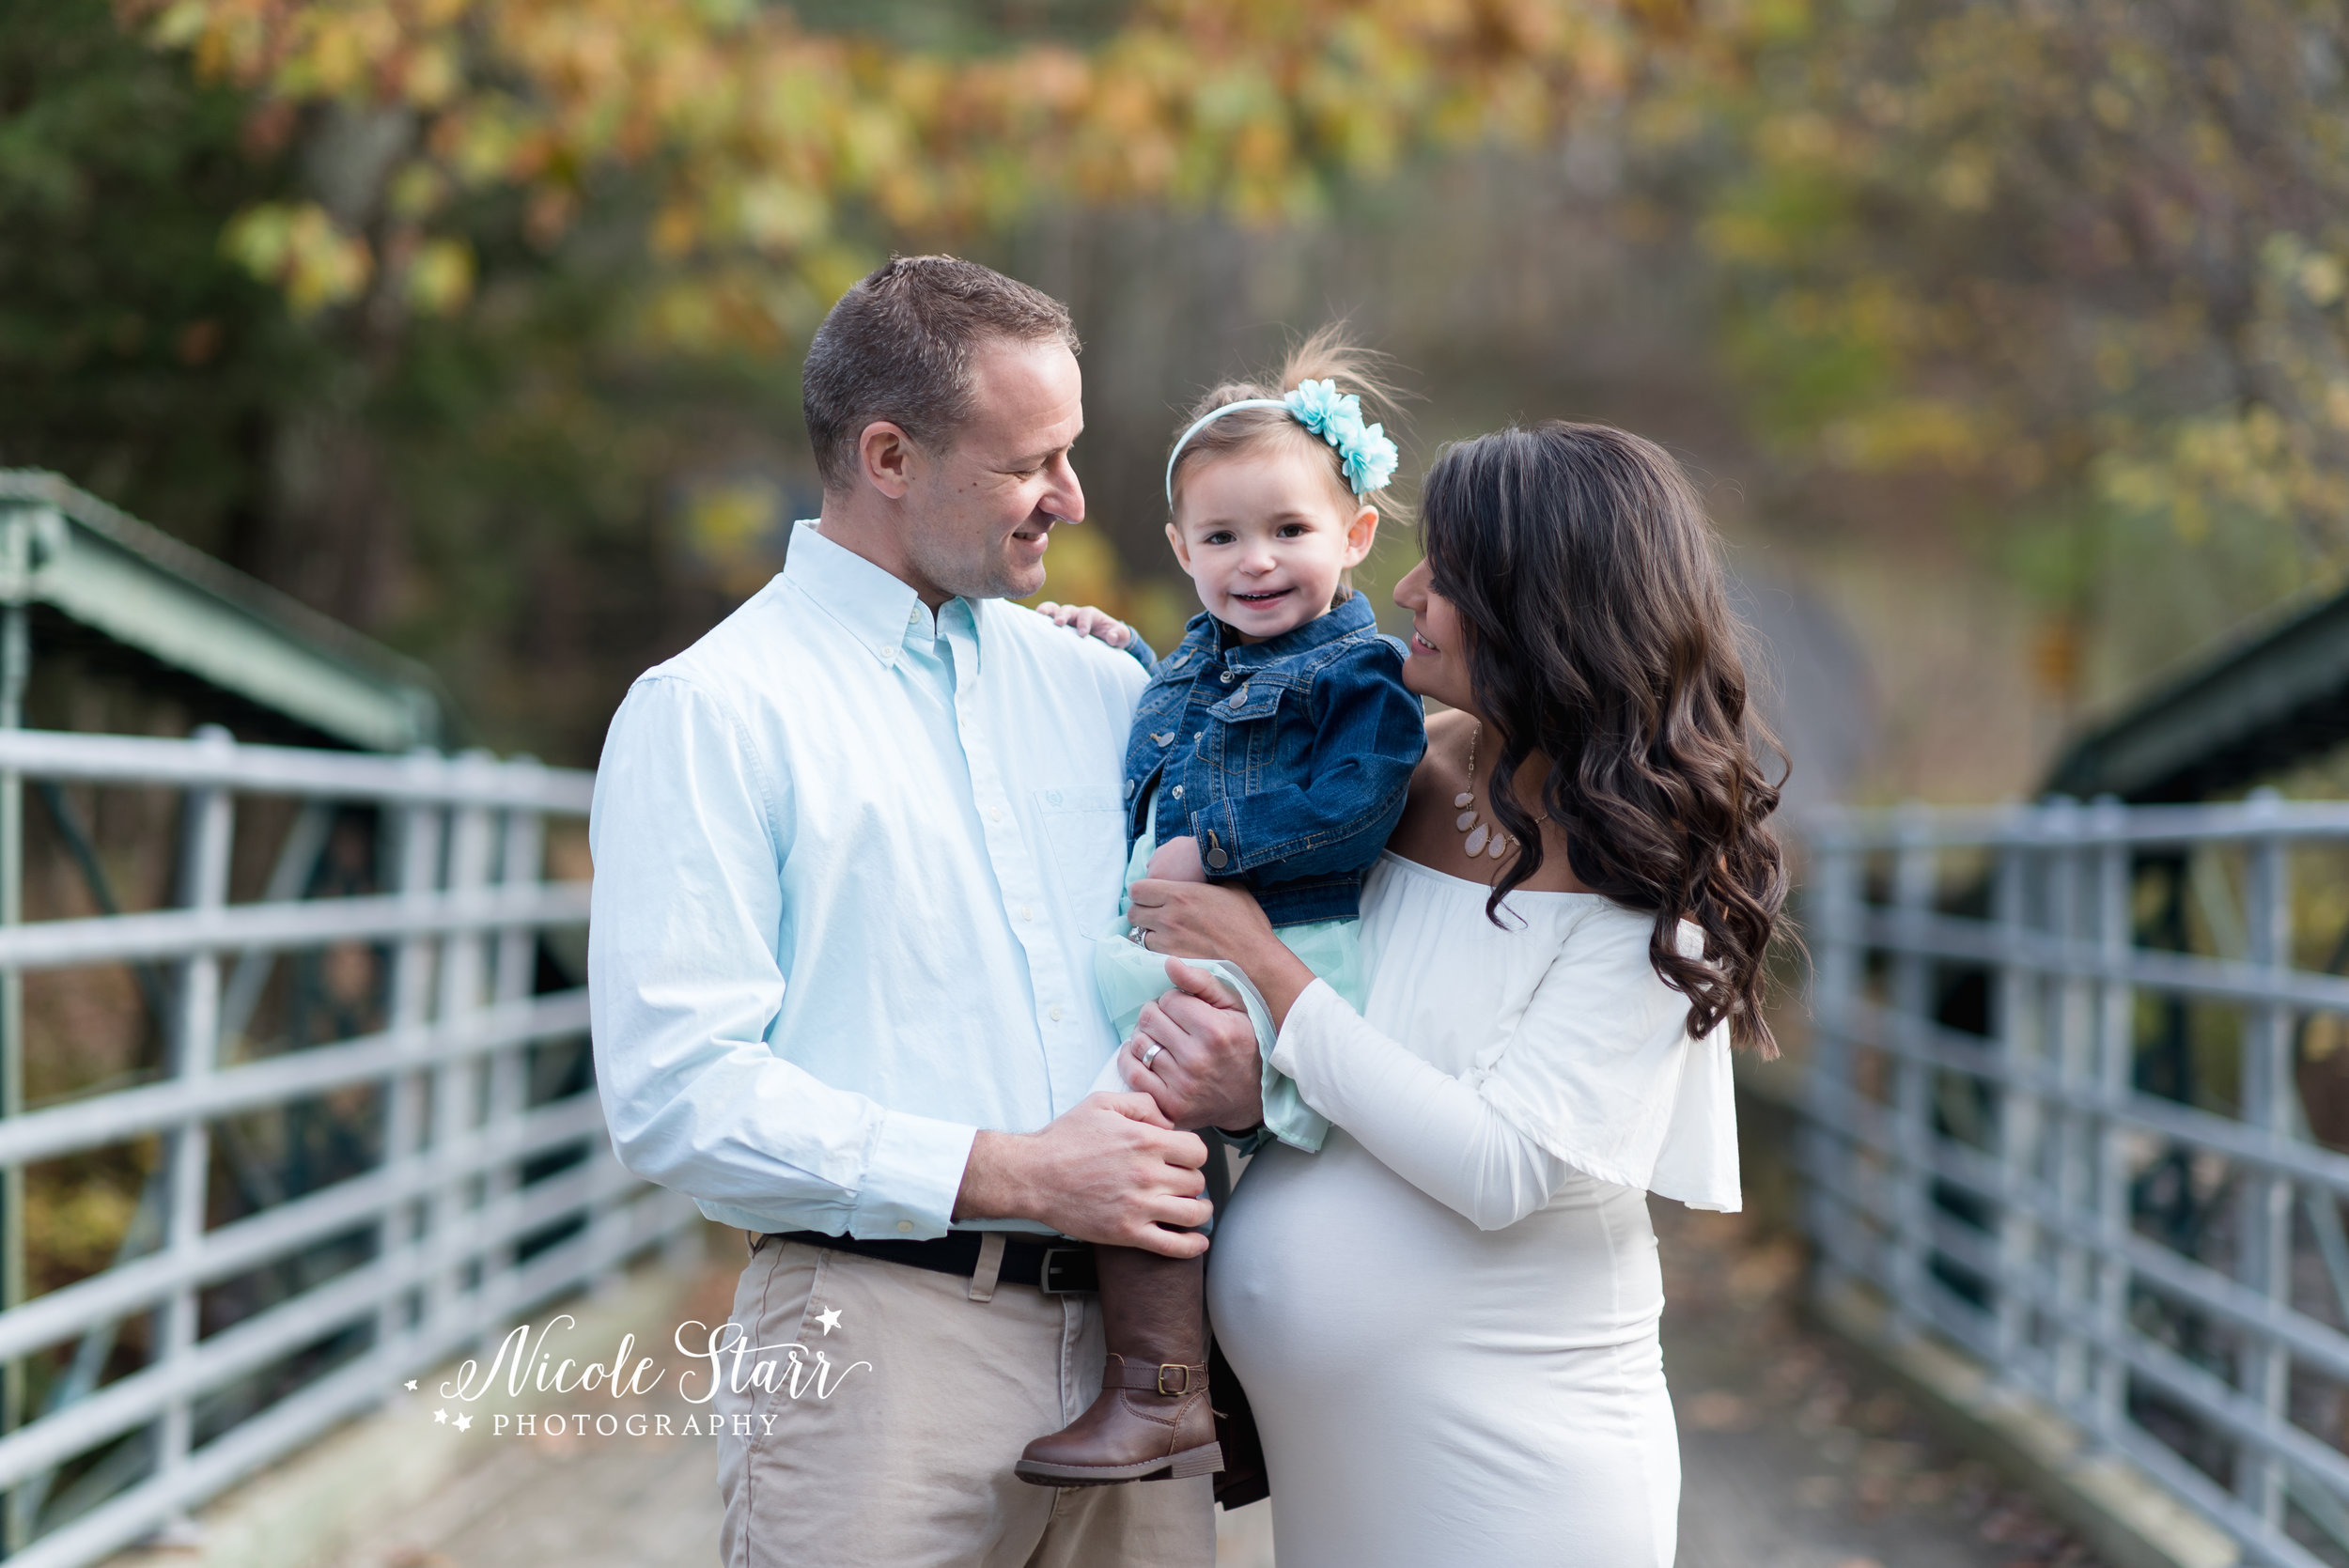 Nicole Starr Photography | Saratoga Springs Maternity Photographer | Boston Maternity Photographer | Upstate NY Maternity Photographer | Maternity Photographer | Maternity session | Maternity dress | Delmar NY Maternity Photographer | Loudonville Maternity Photographer